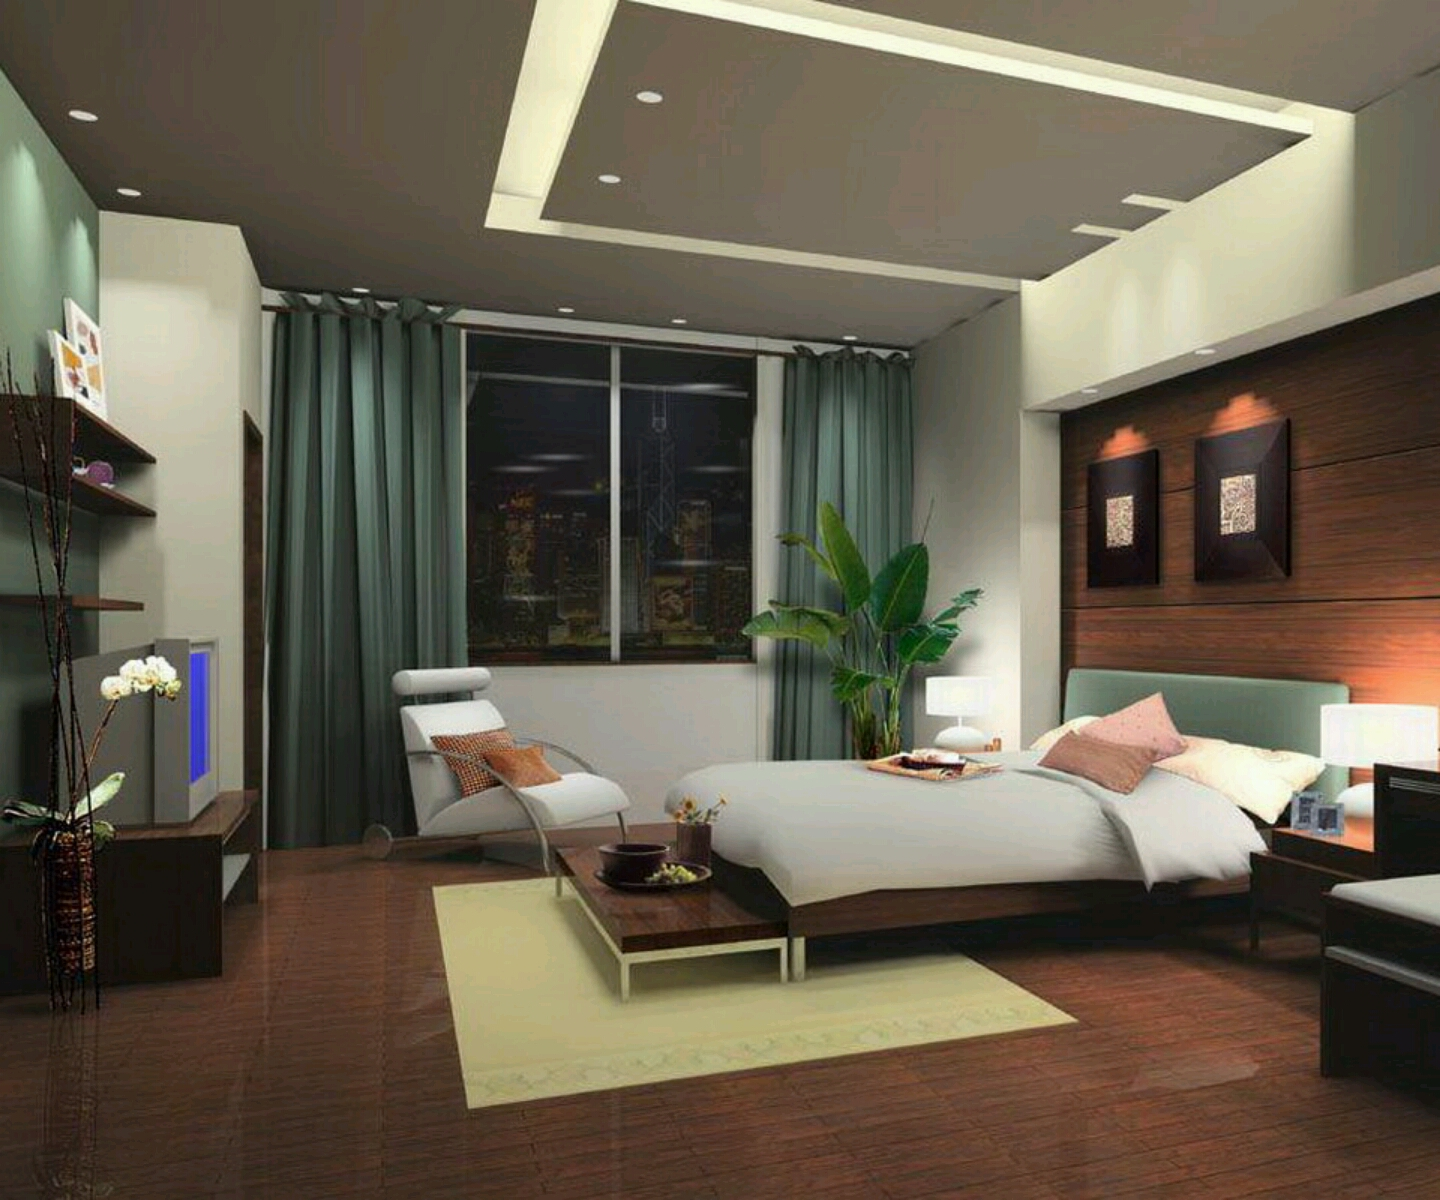 Best Bedrooms Design designs latest modern homes bedrooms designs